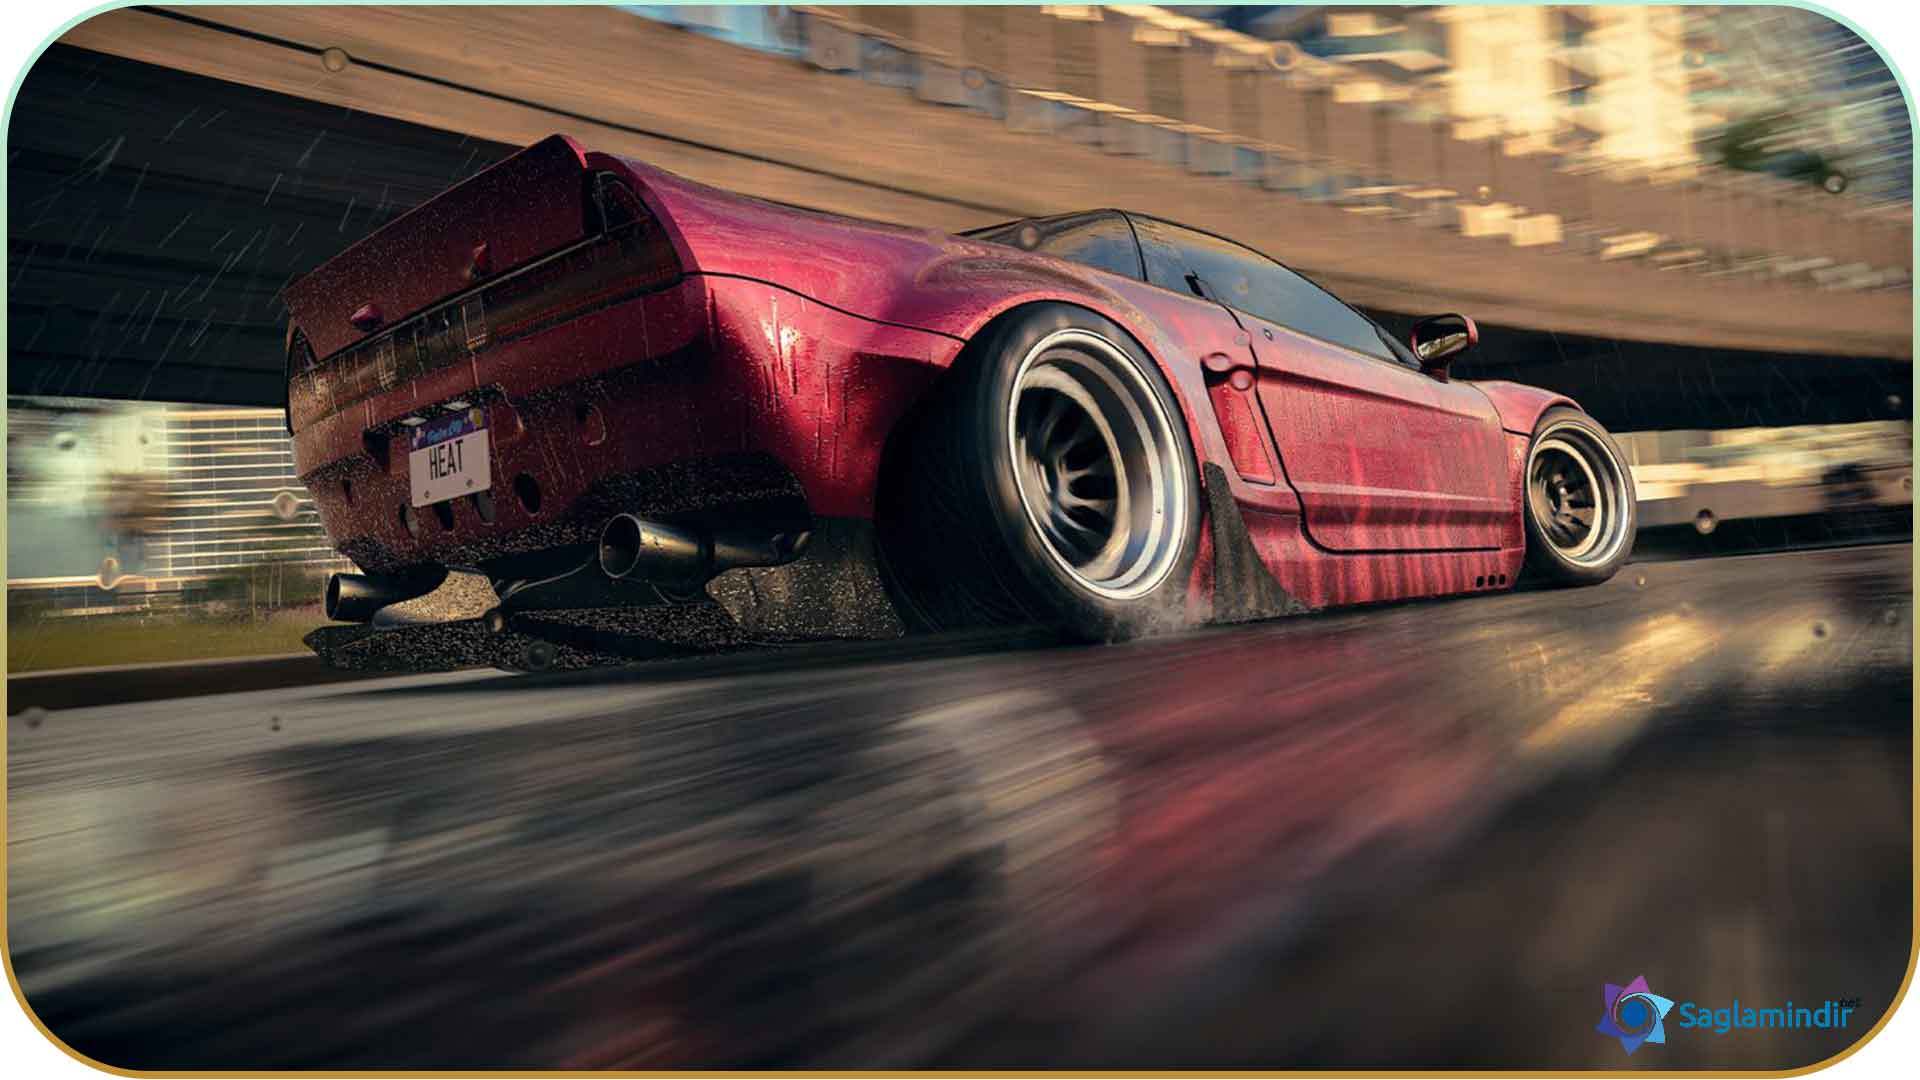 Need For Speed Heat saglamindir